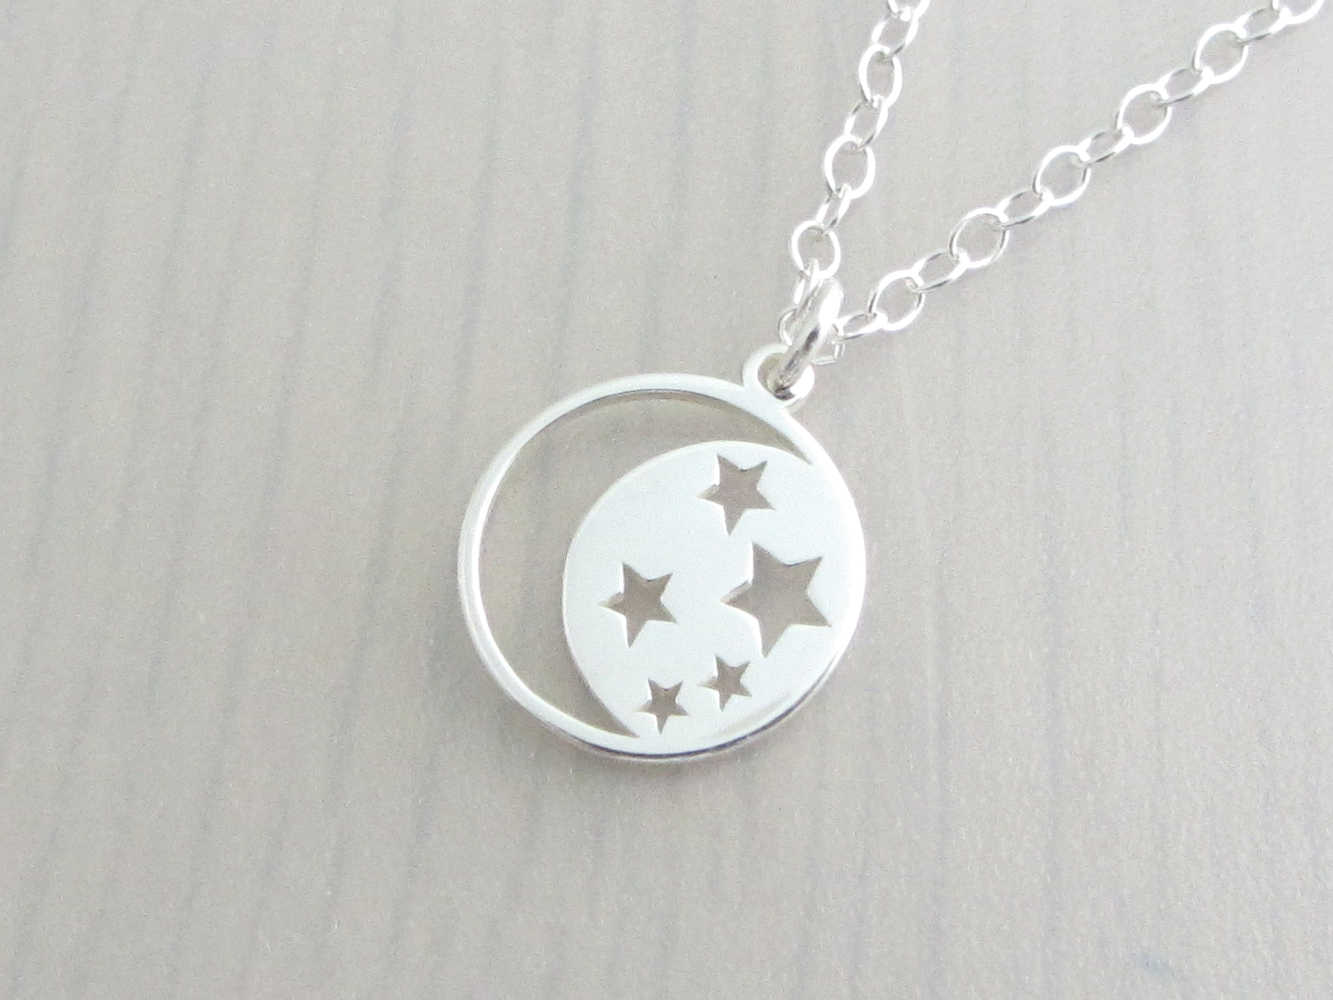 silver crescent moon with cut out stars charm on a silver chain